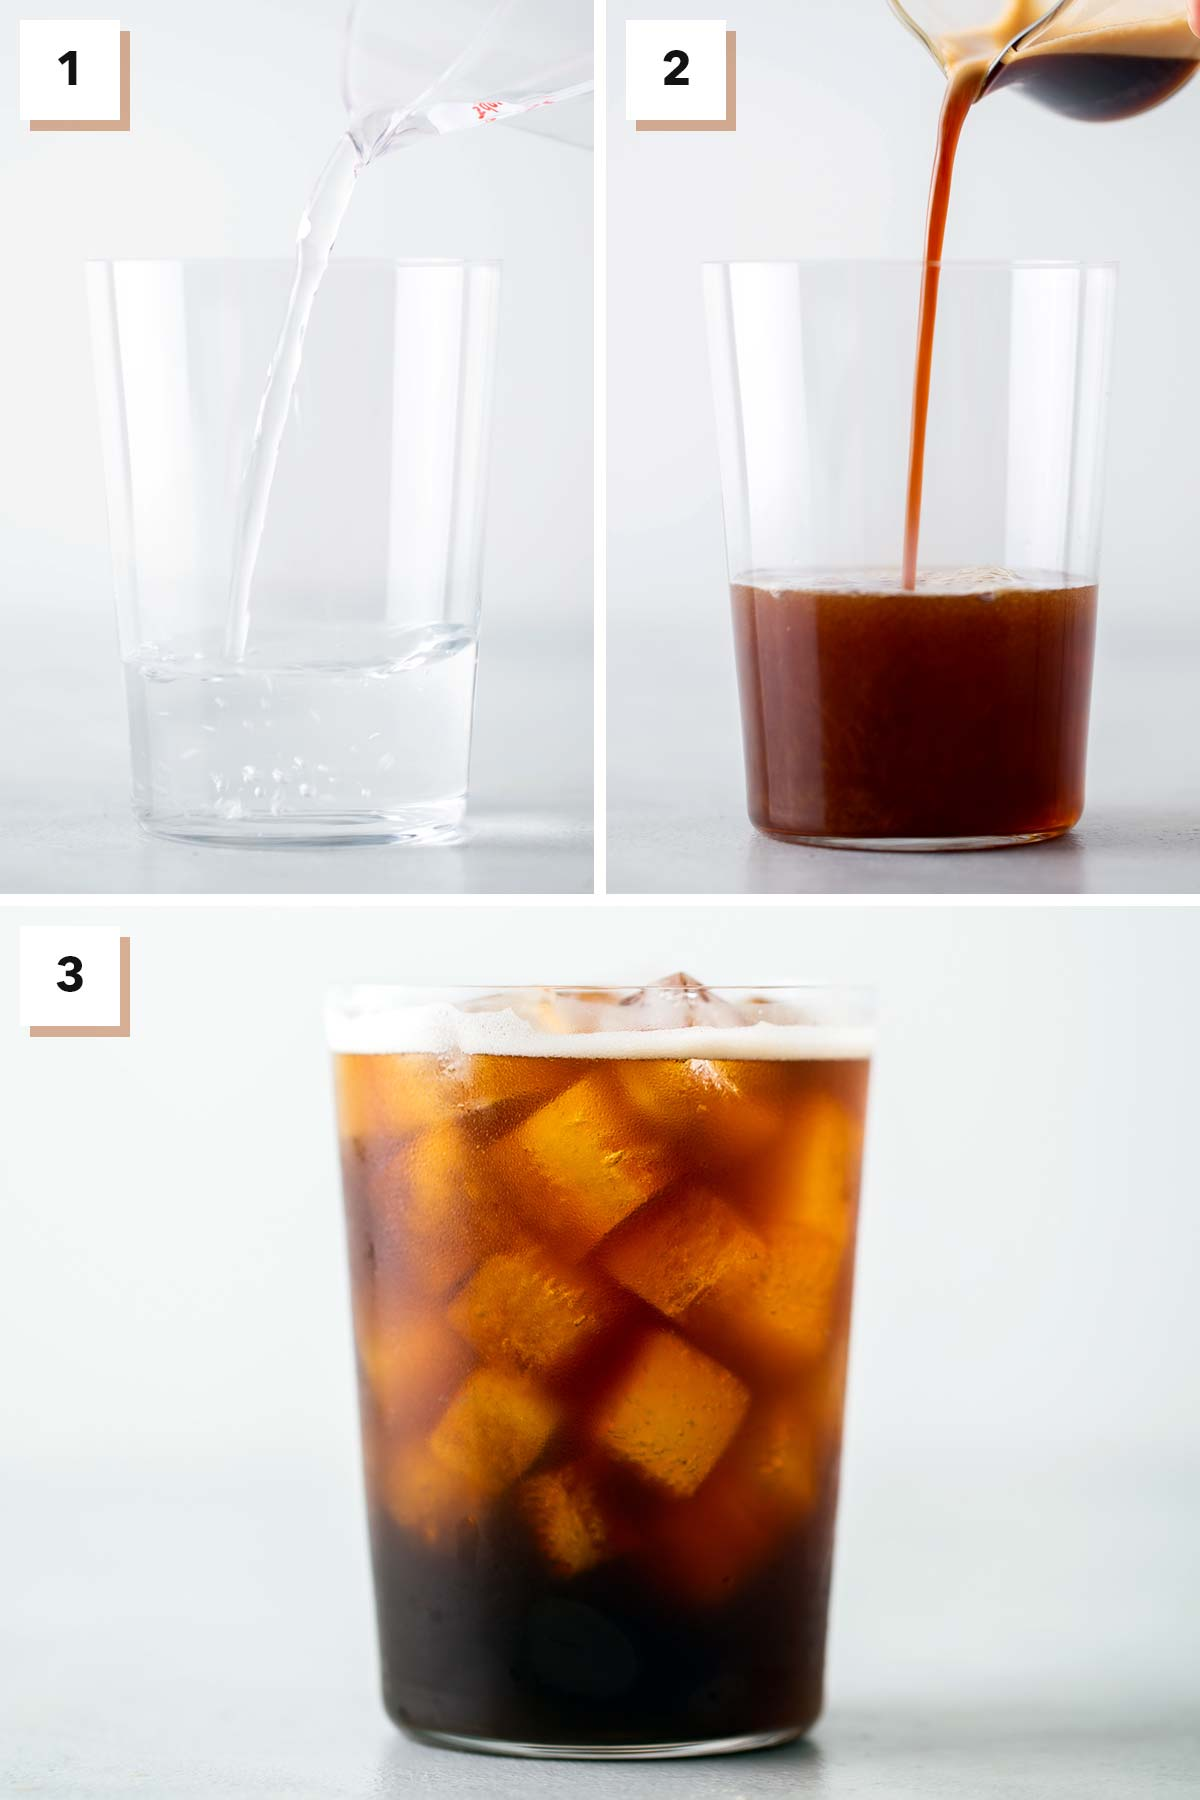 Steps to make an Iced Americano at home.